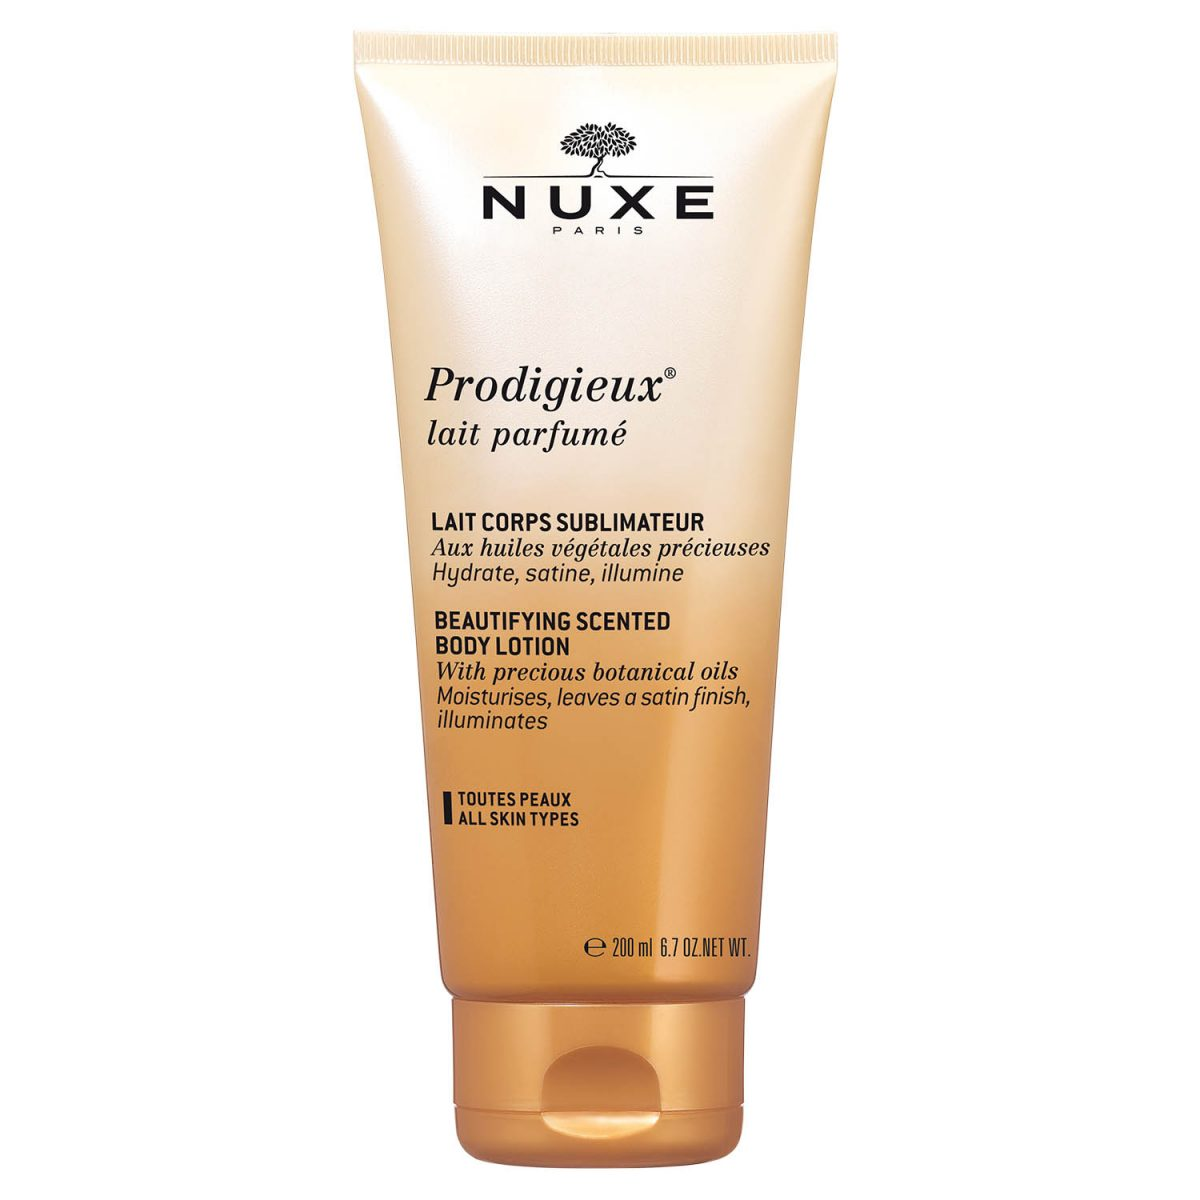 Nuxe Prodigieus body lotion 200 ml